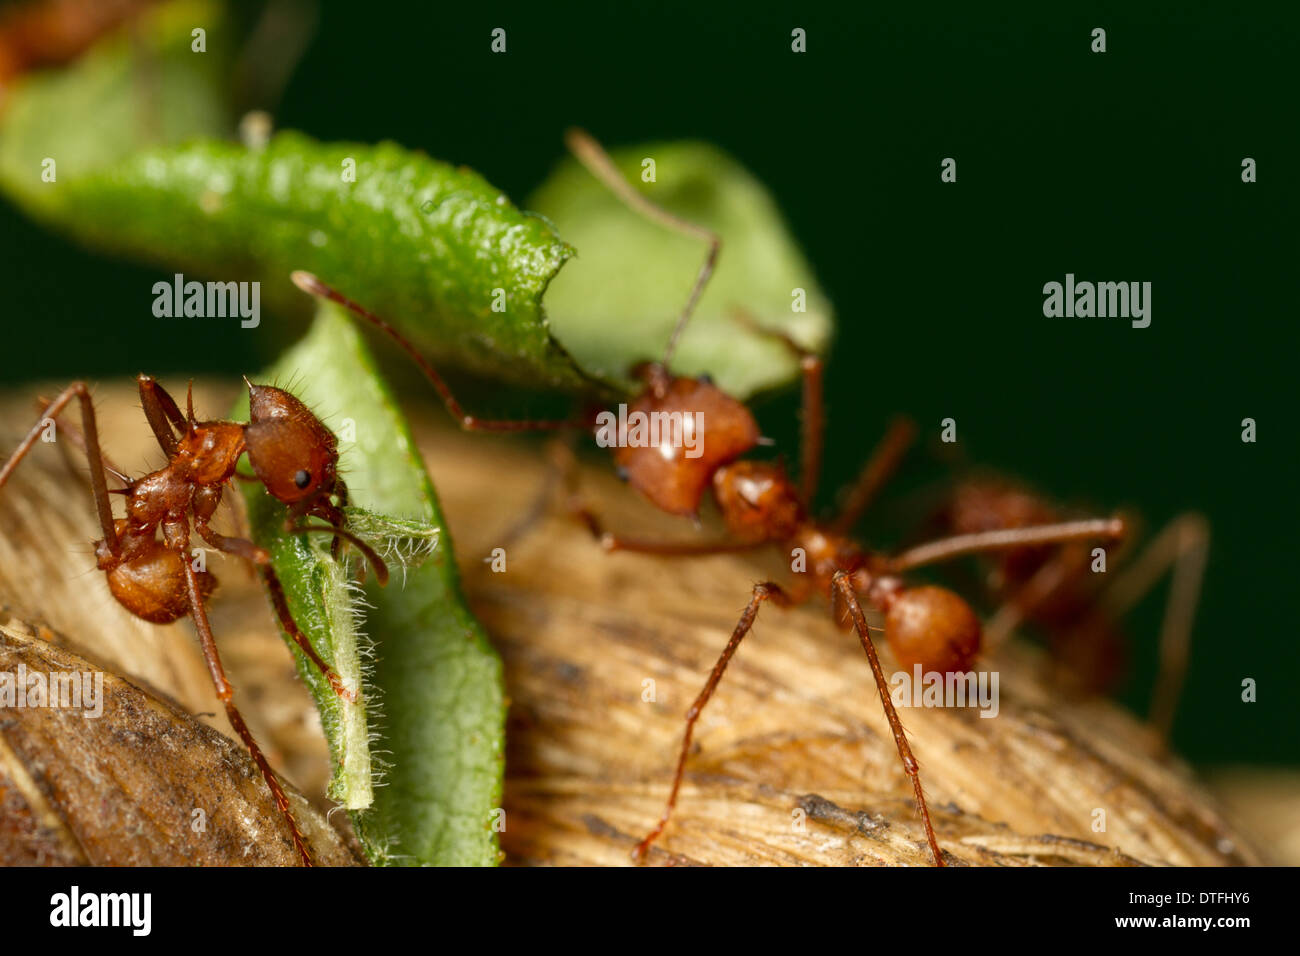 Leaf-cutter ants (Atta cephalotes) - Stock Image